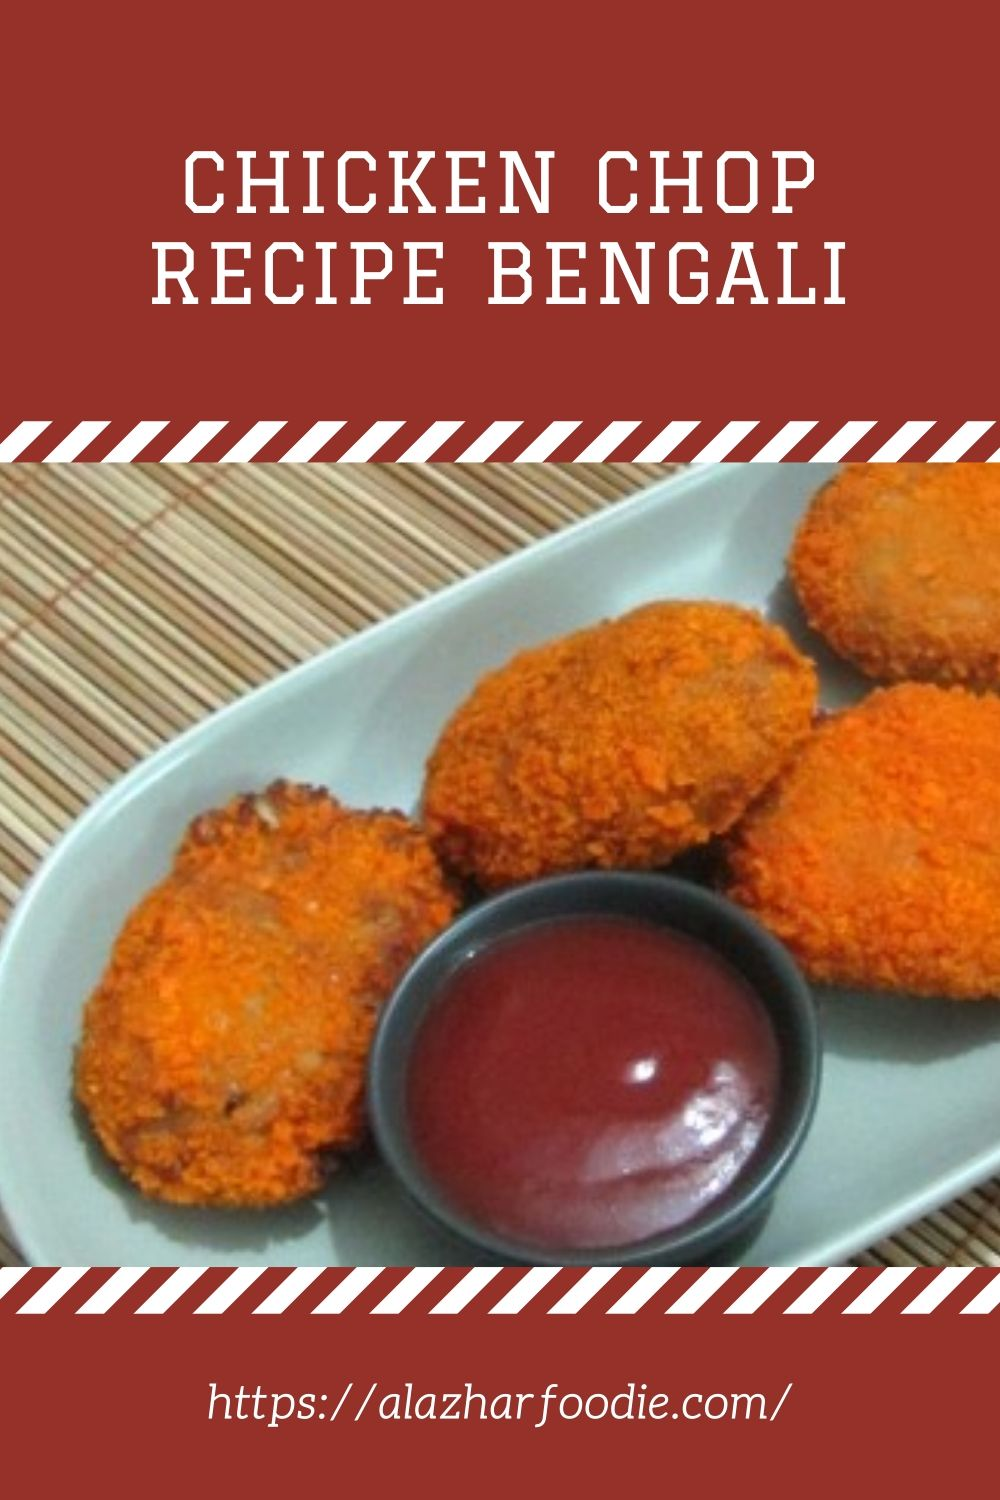 Chicken Chop Recipe Bengali 1